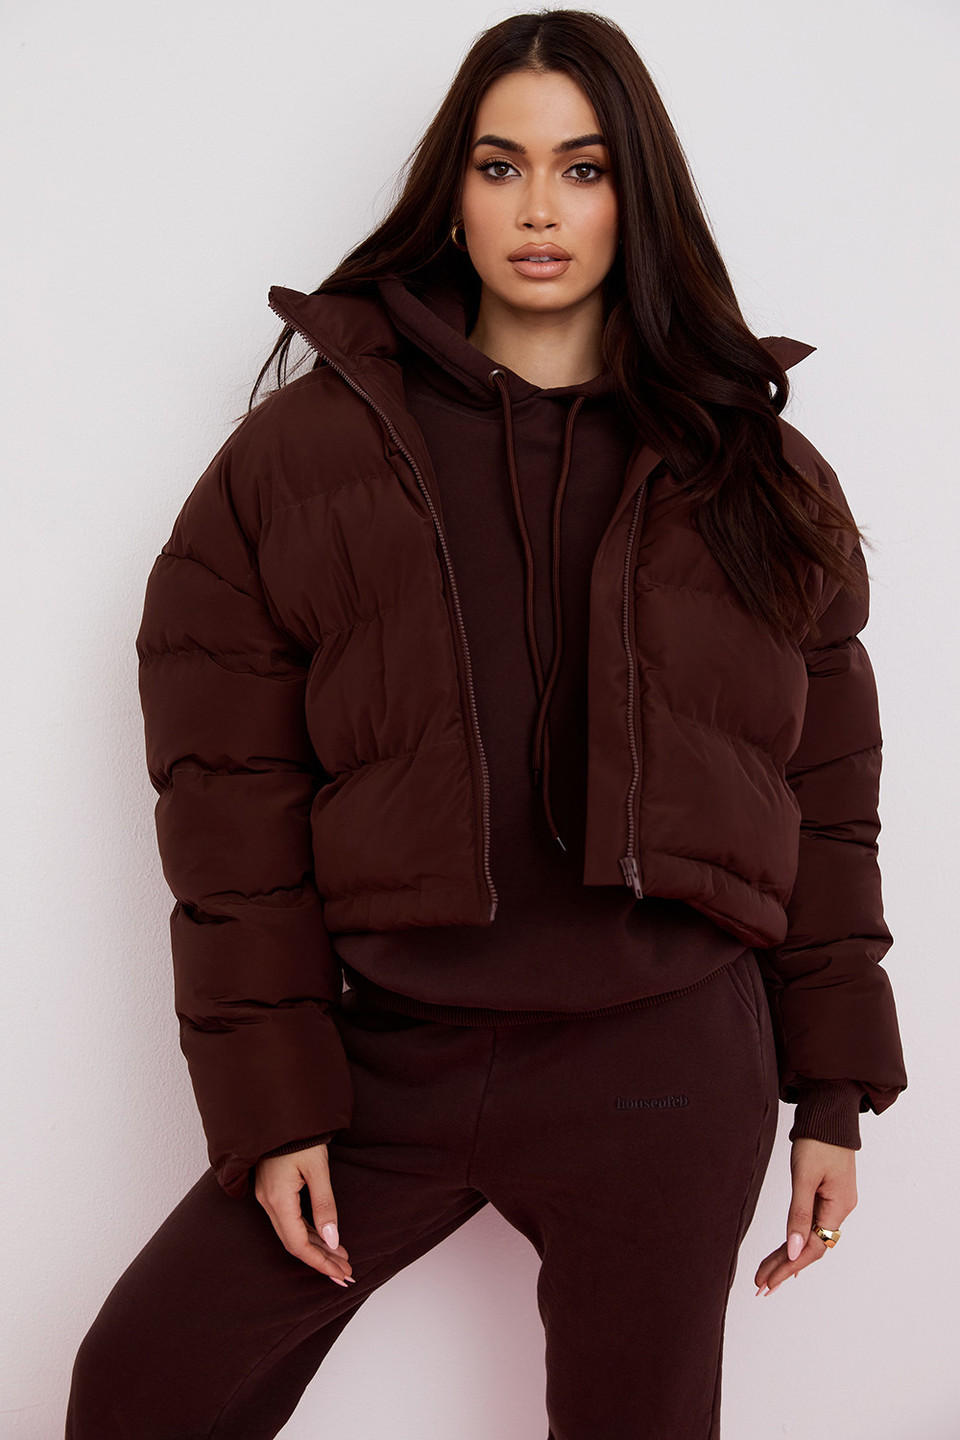 Hero Chocolate Oversized C Shape Puffer Jacket